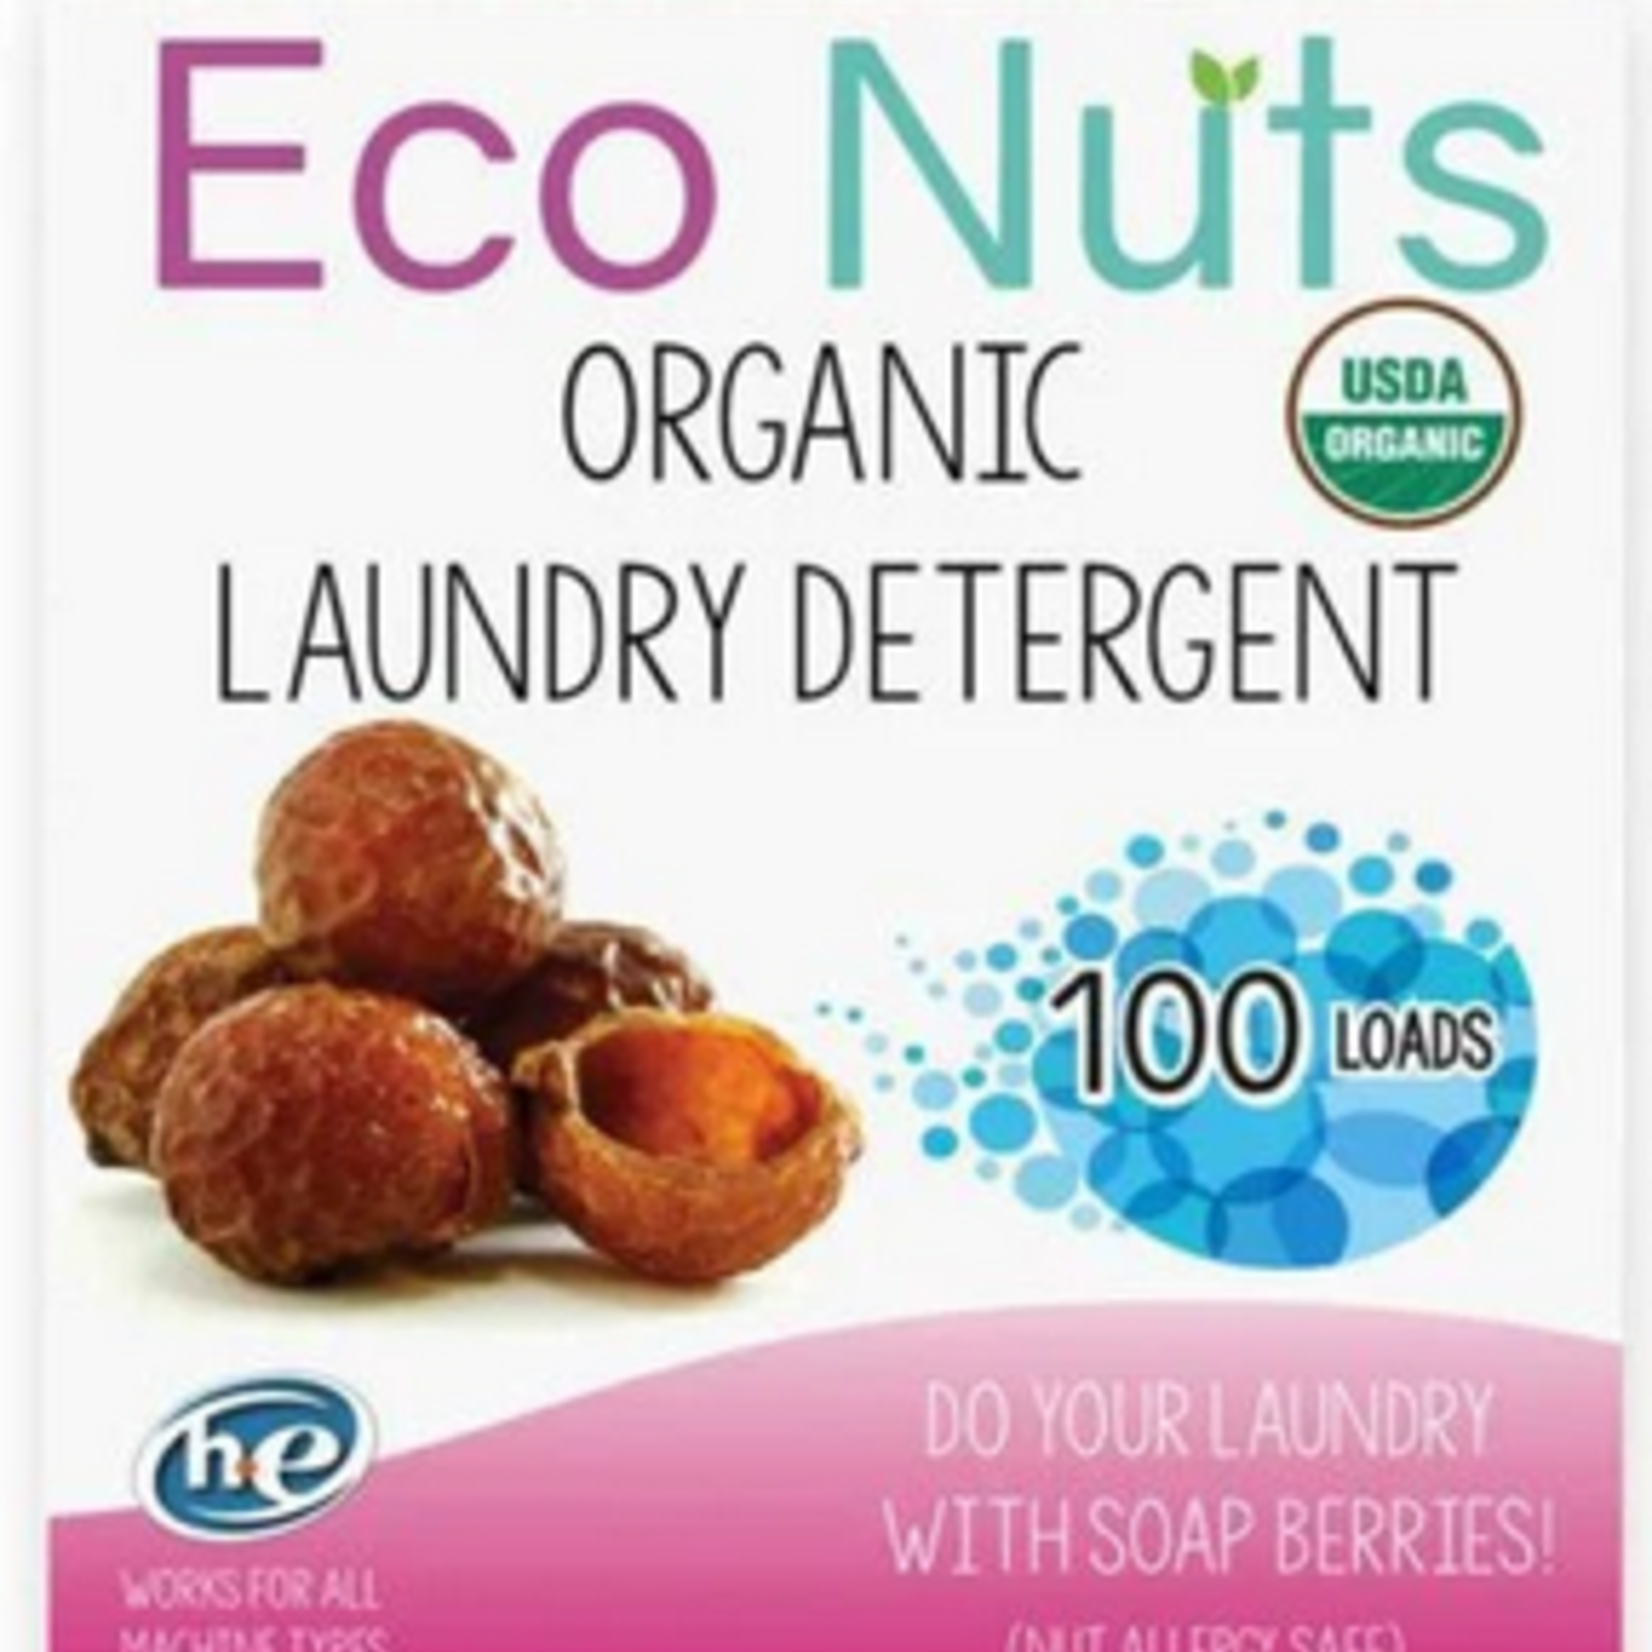 Eco Nuts - 100 loads